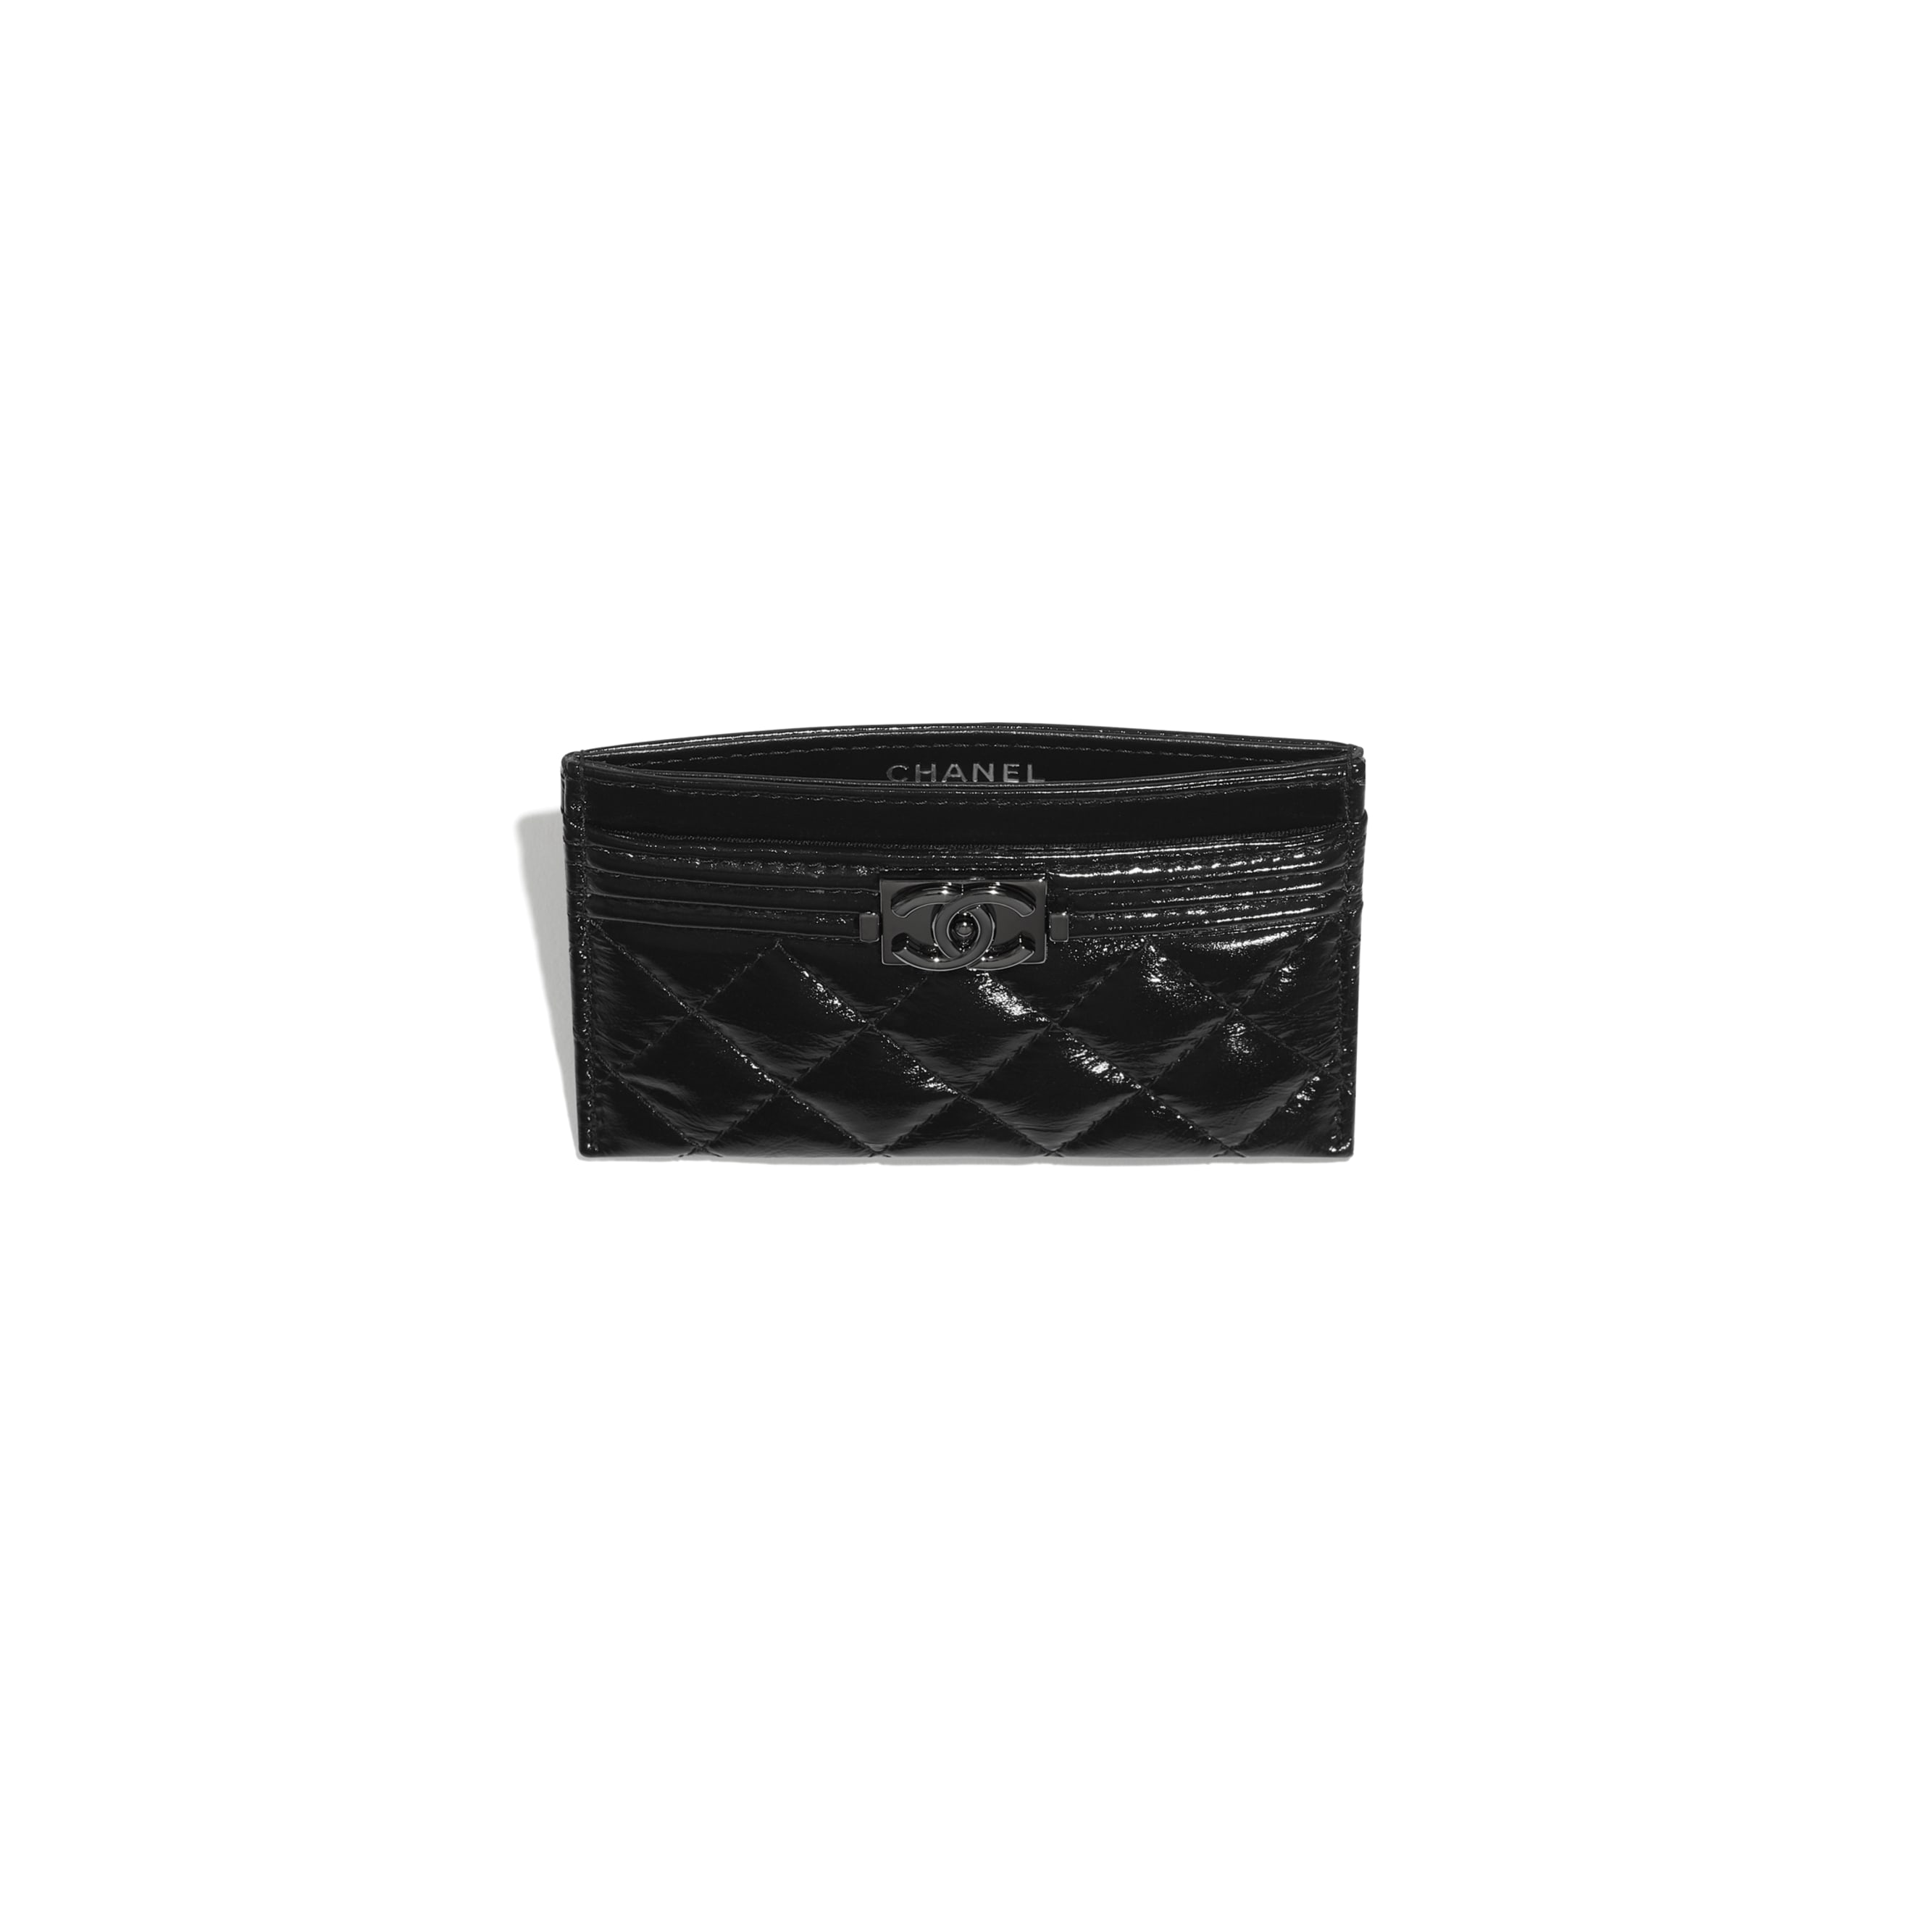 BOY CHANEL Card Holder - Black - Aged Calfskin & Ruthenium-Finish Metal - CHANEL - Other view - see standard sized version